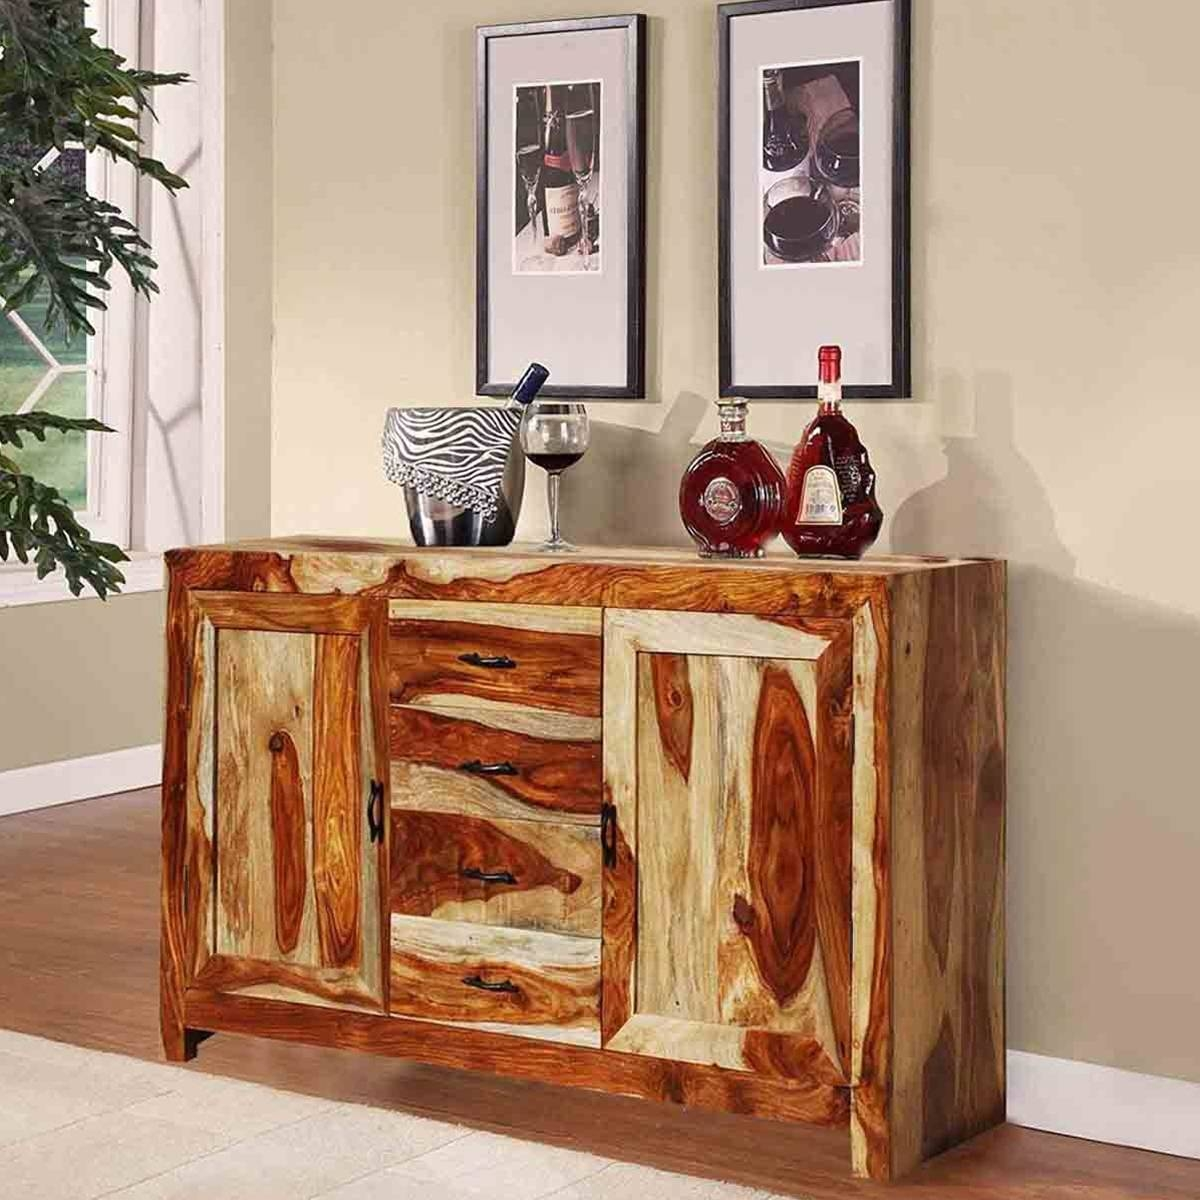 Rustic Buffets Sideboards intended for Distressed Wood Sideboards (Image 22 of 30)